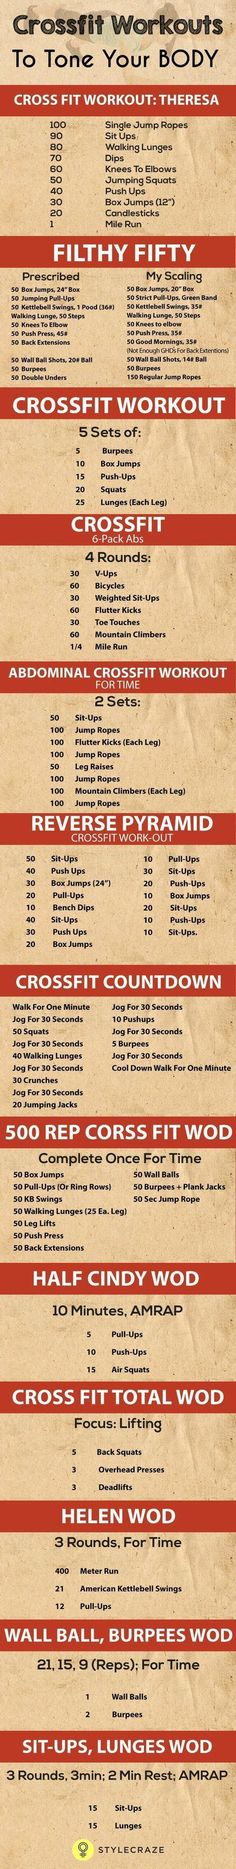 20 Effective Crossfit Workouts To Tone Your Body #IsThereATruthAboutAbs?